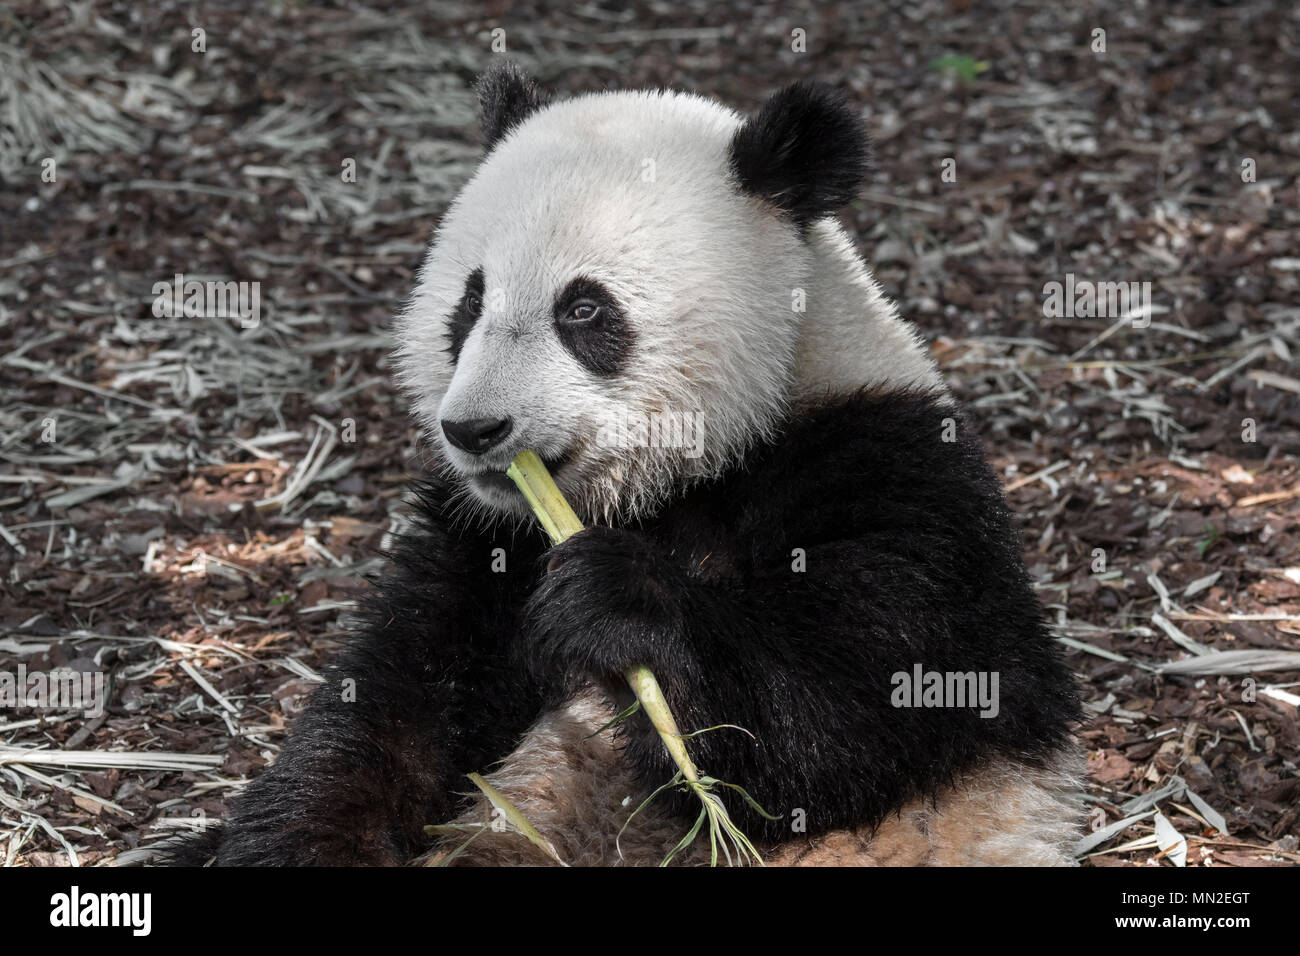 Young two year old giant panda (Ailuropoda melanoleuca) cub eating bamboo Stock Photo